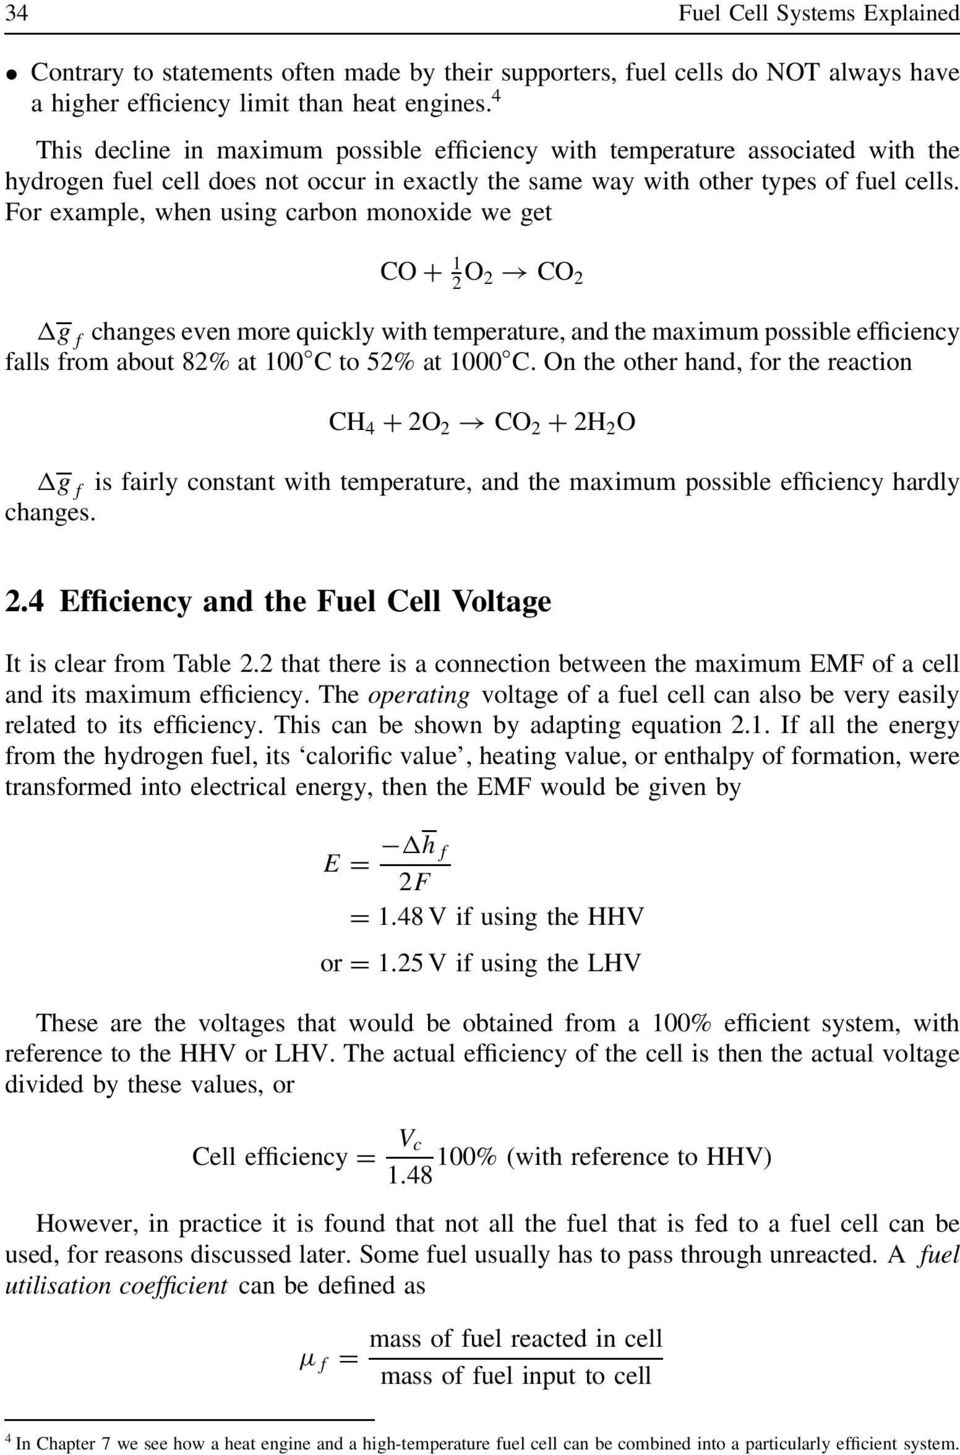 Efficiency and Open Circuit Voltage - PDF